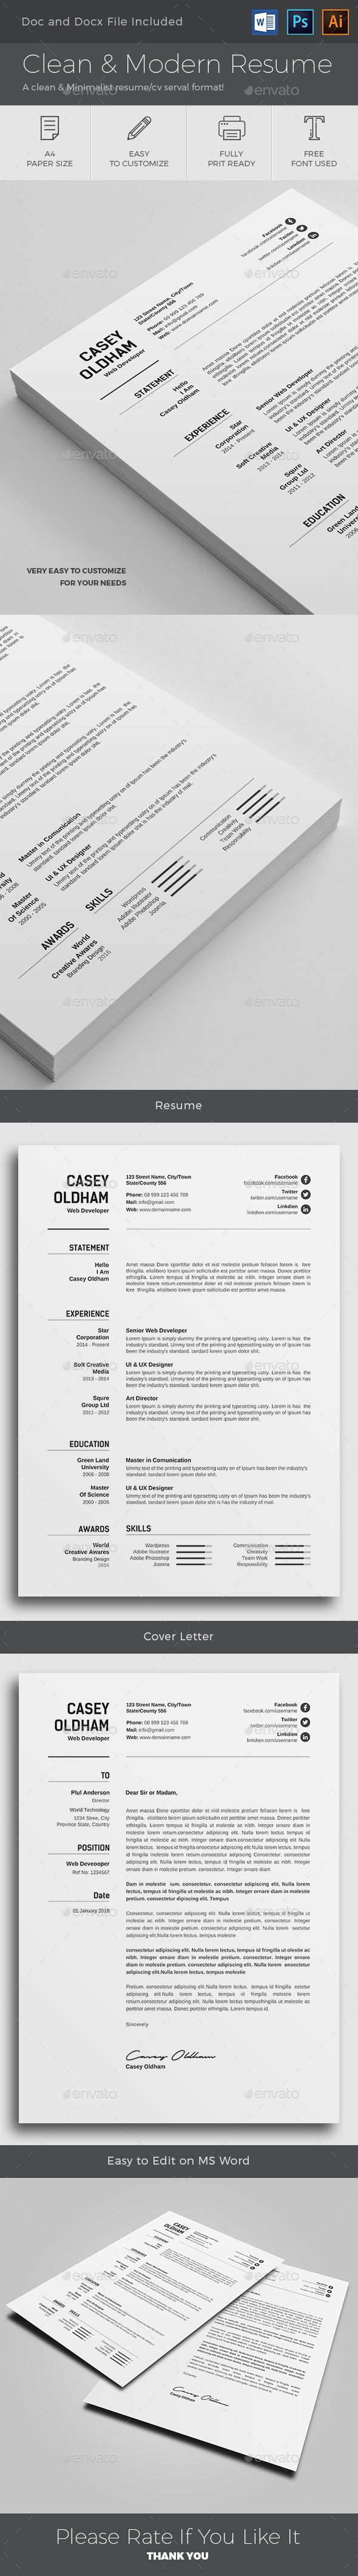 Clean u0026 Modern Resume Template PSD AI